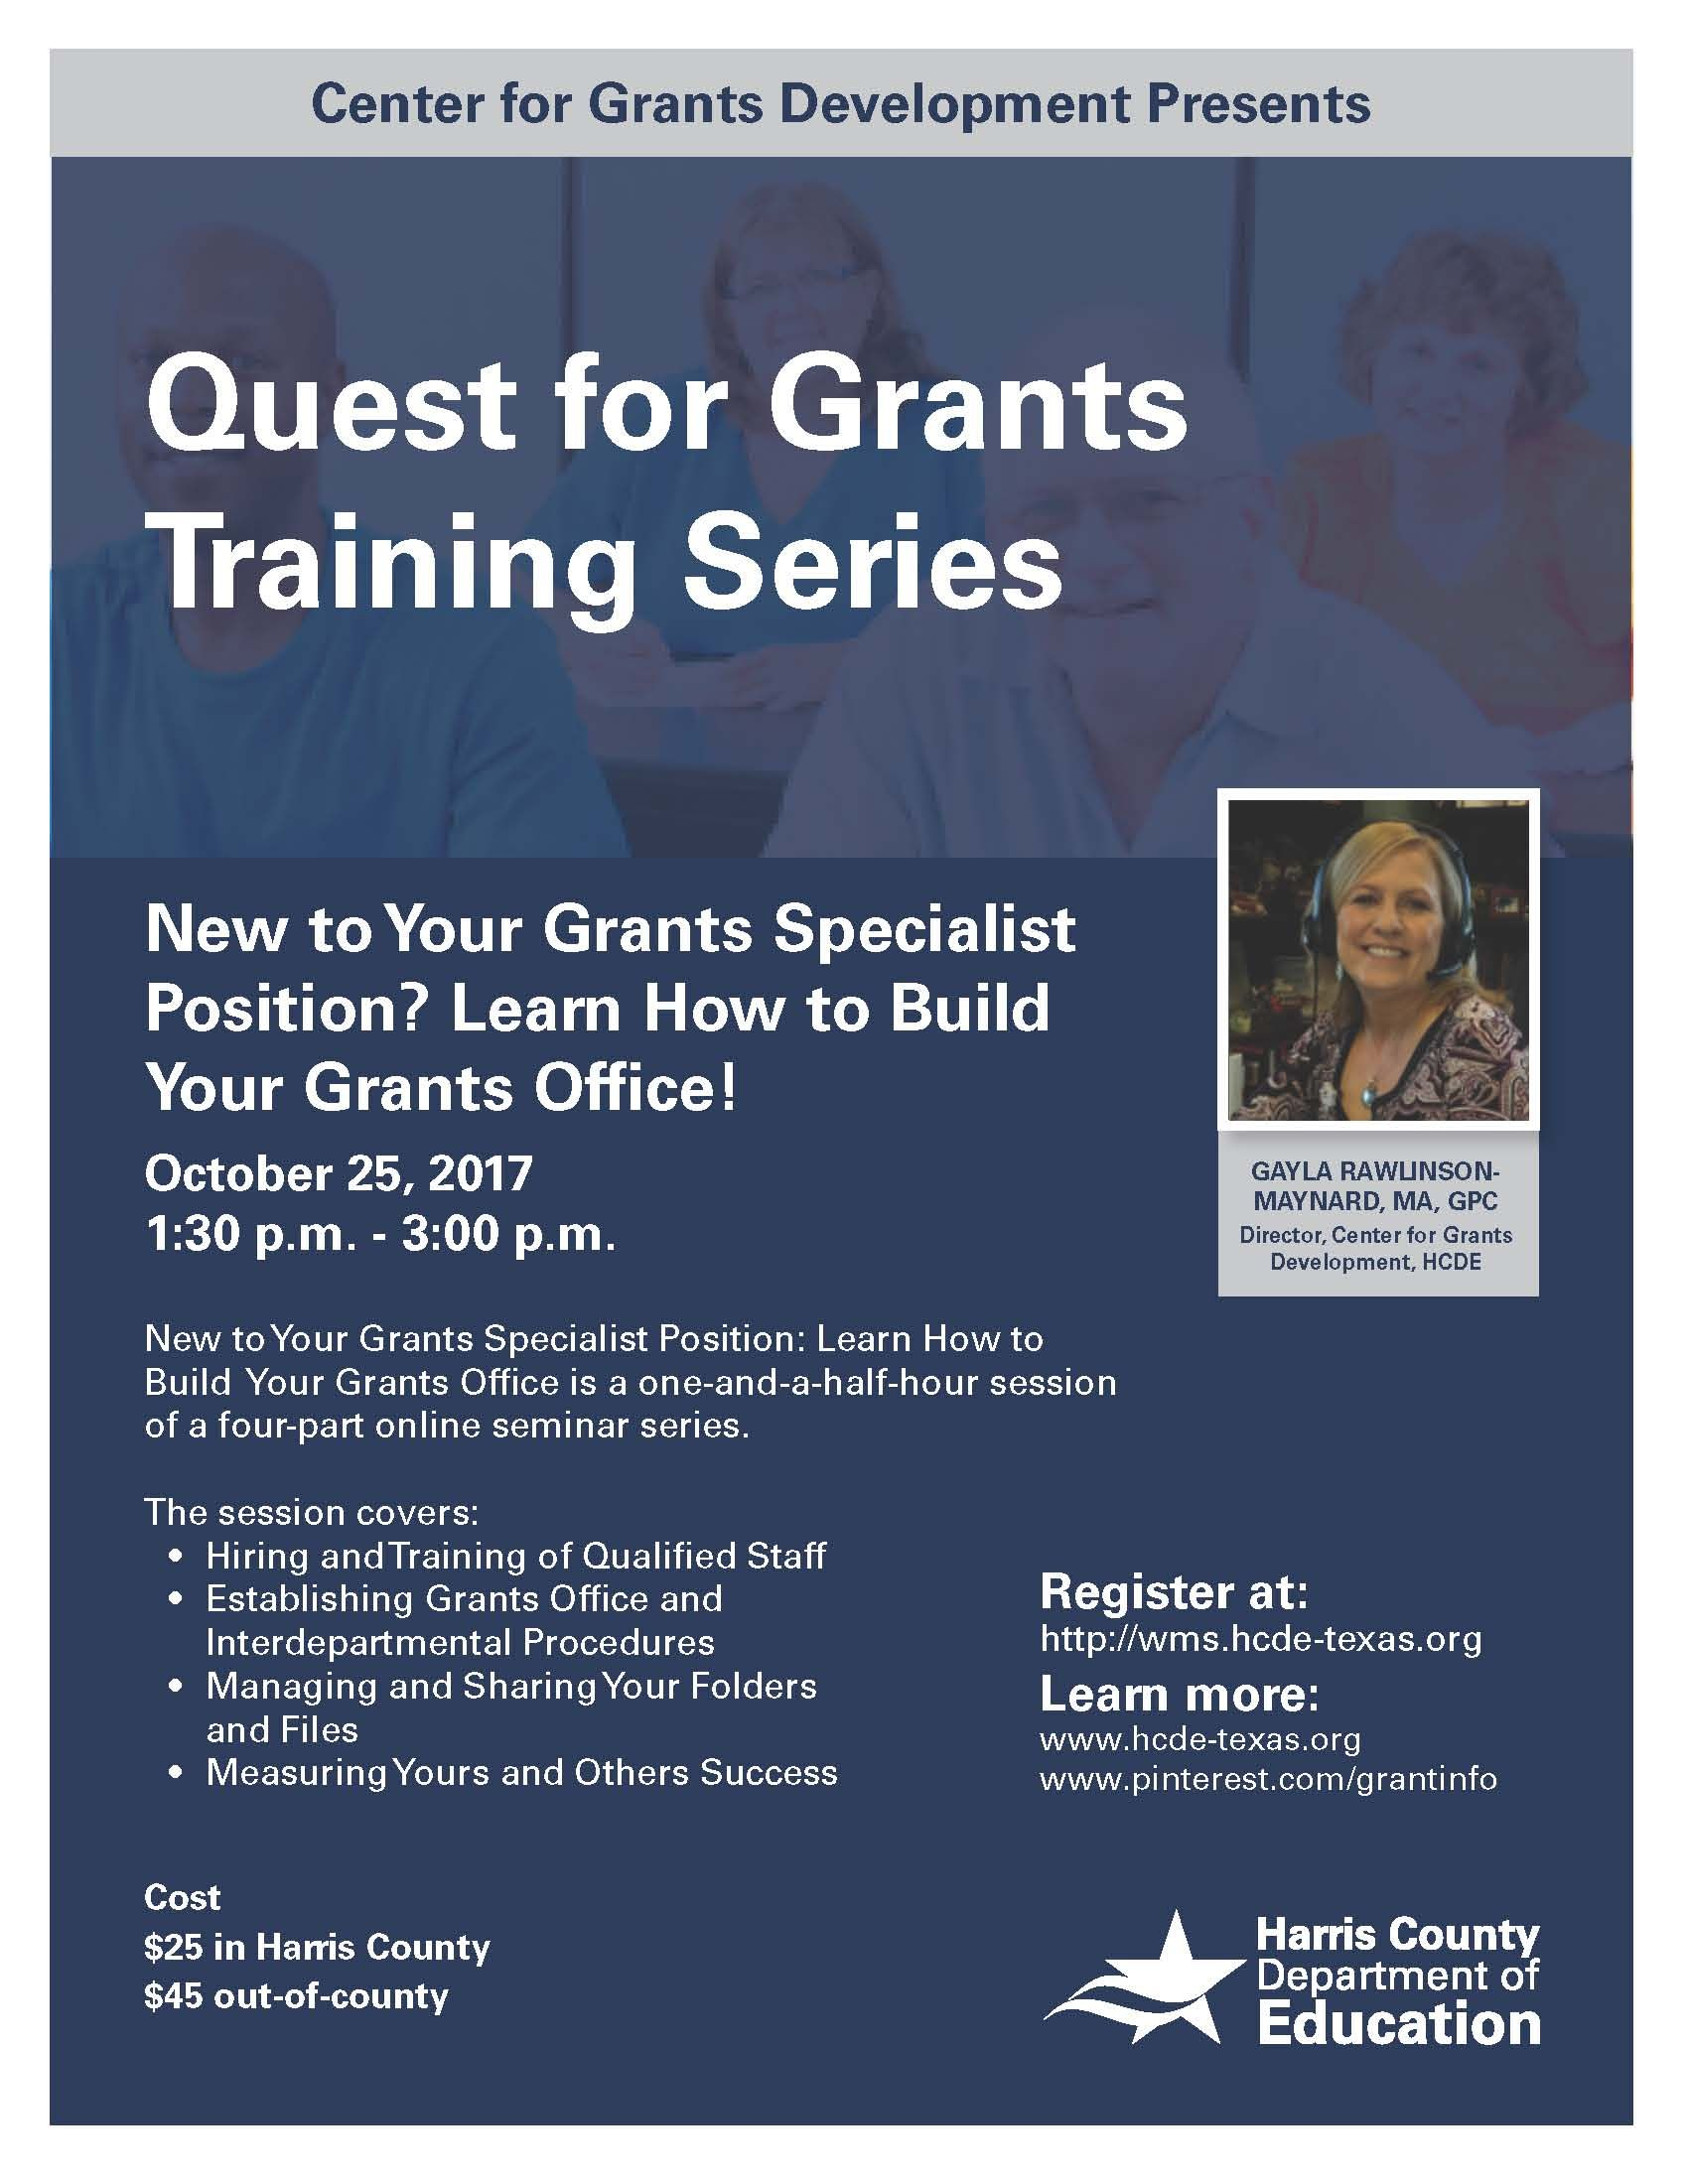 Pin by Center for Grants Development on Grant Research Sites